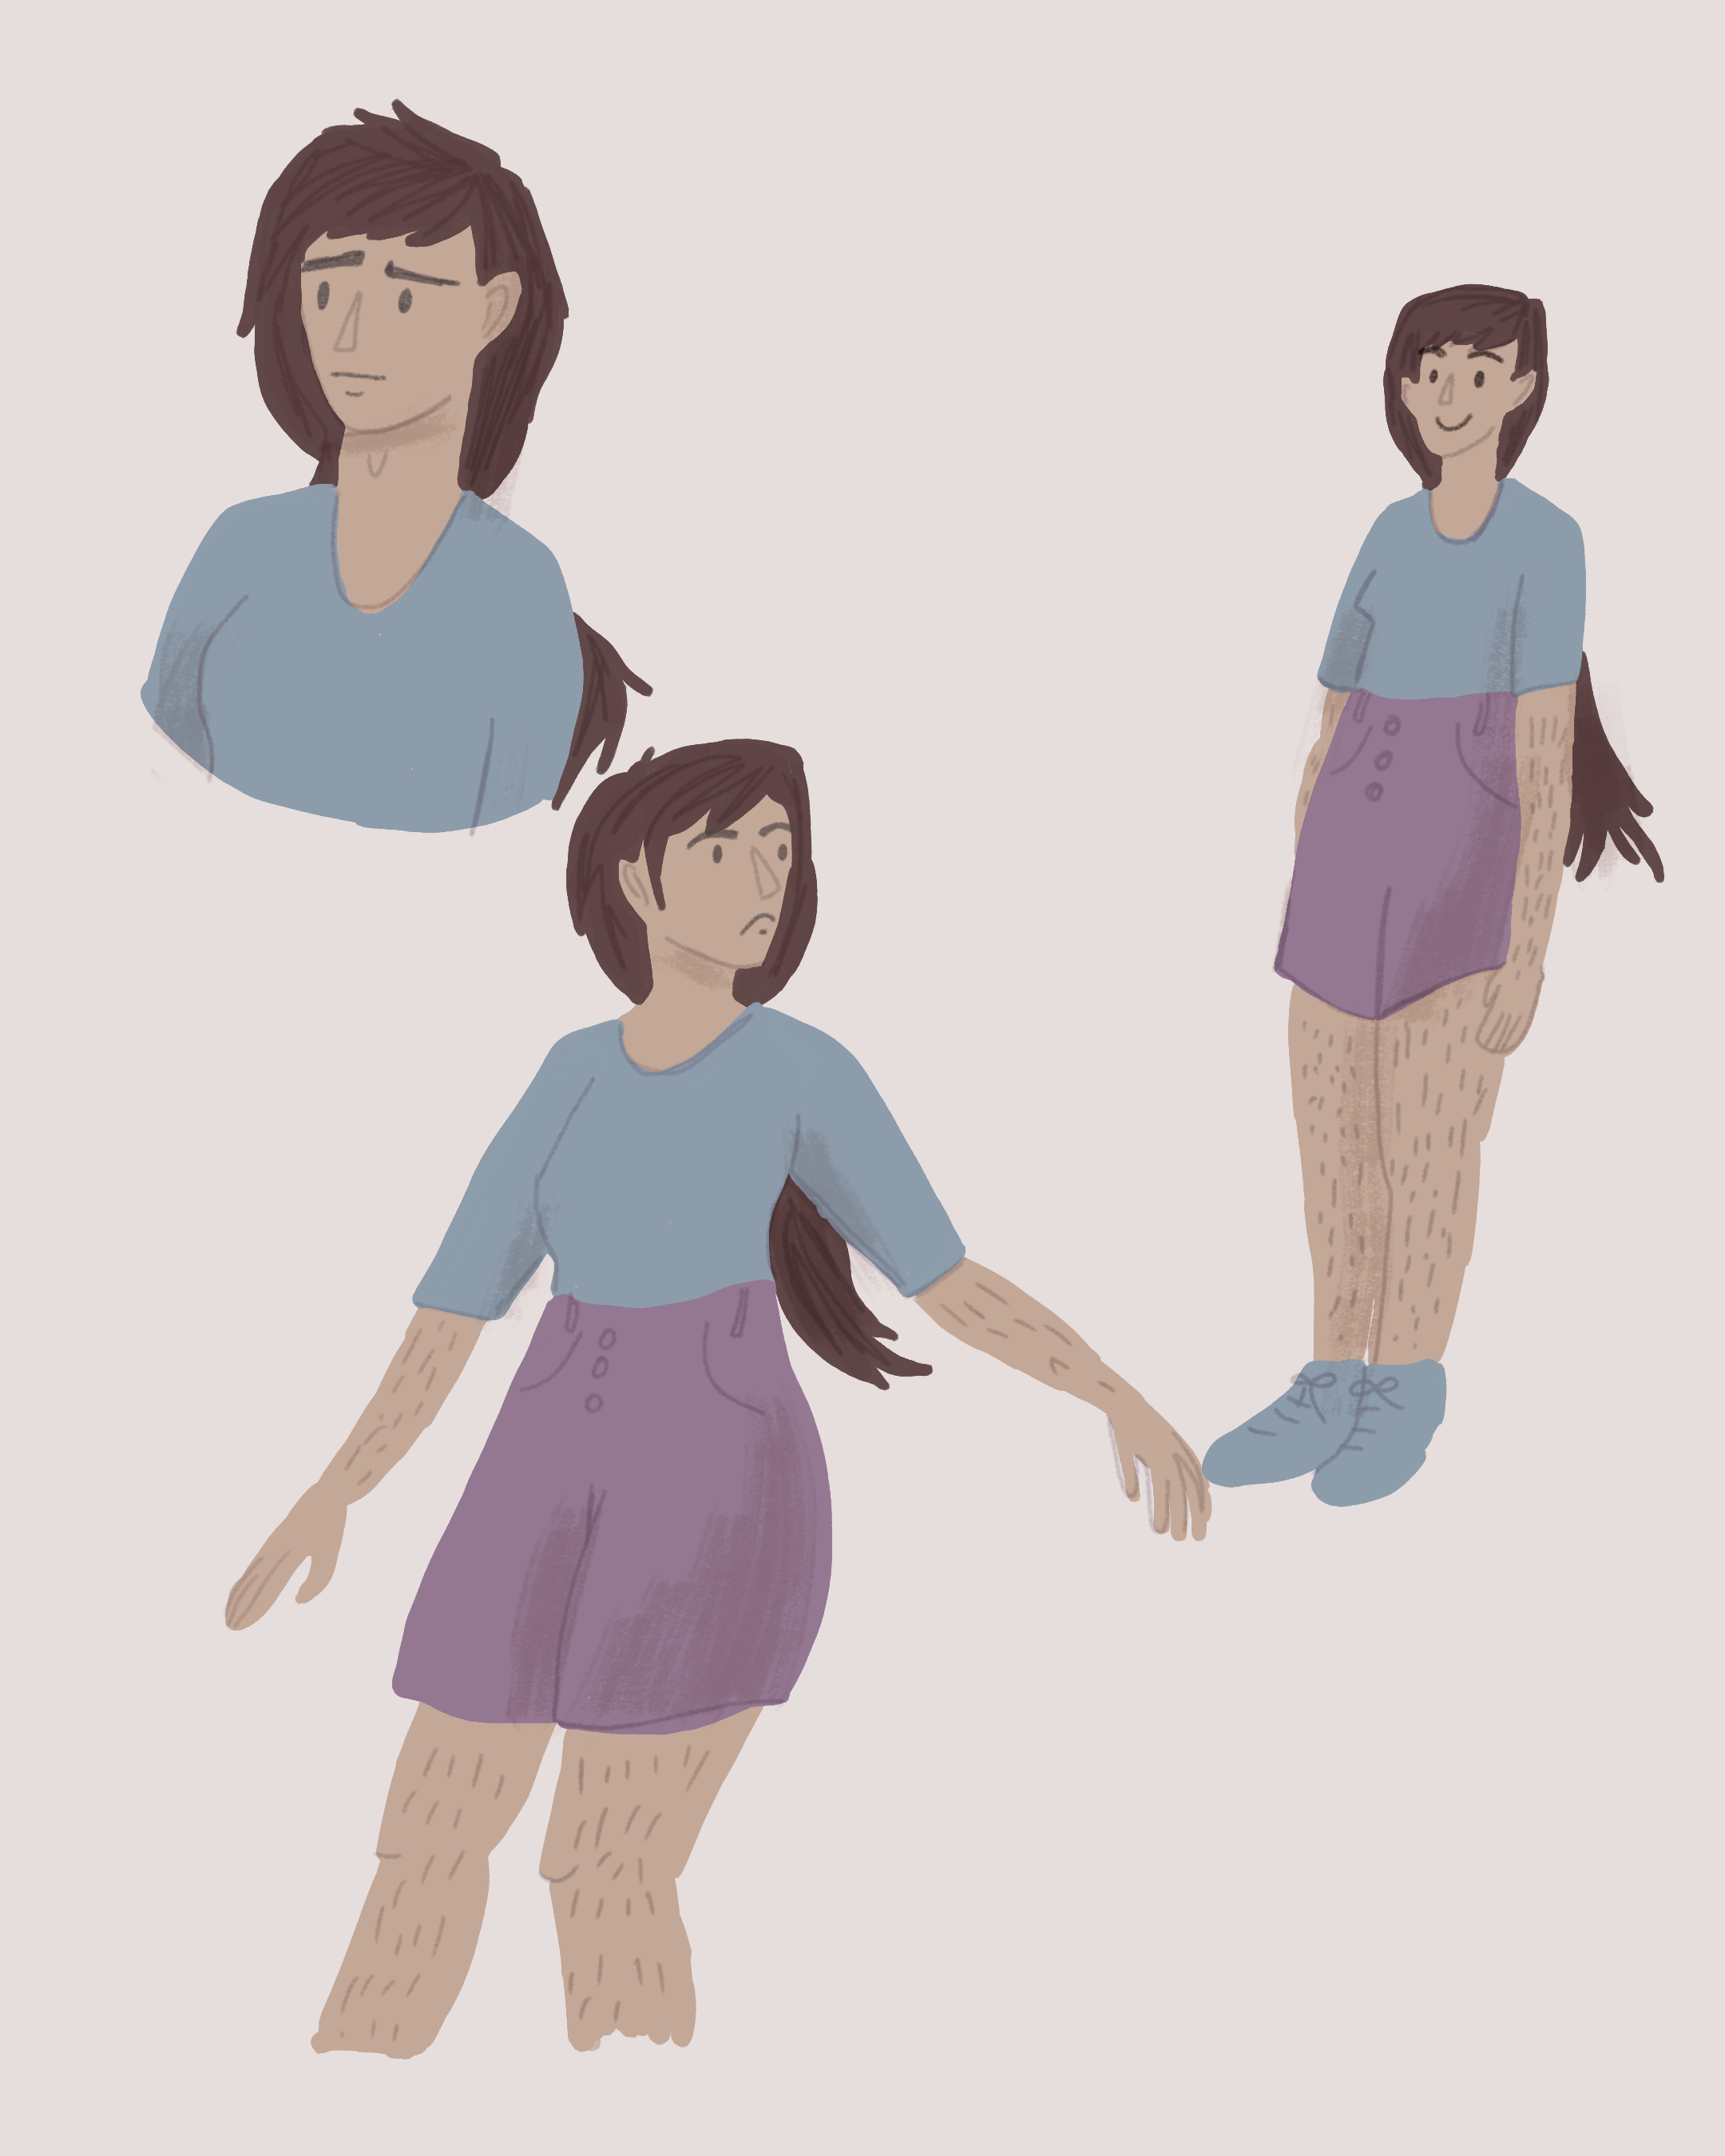 98 a lady.png